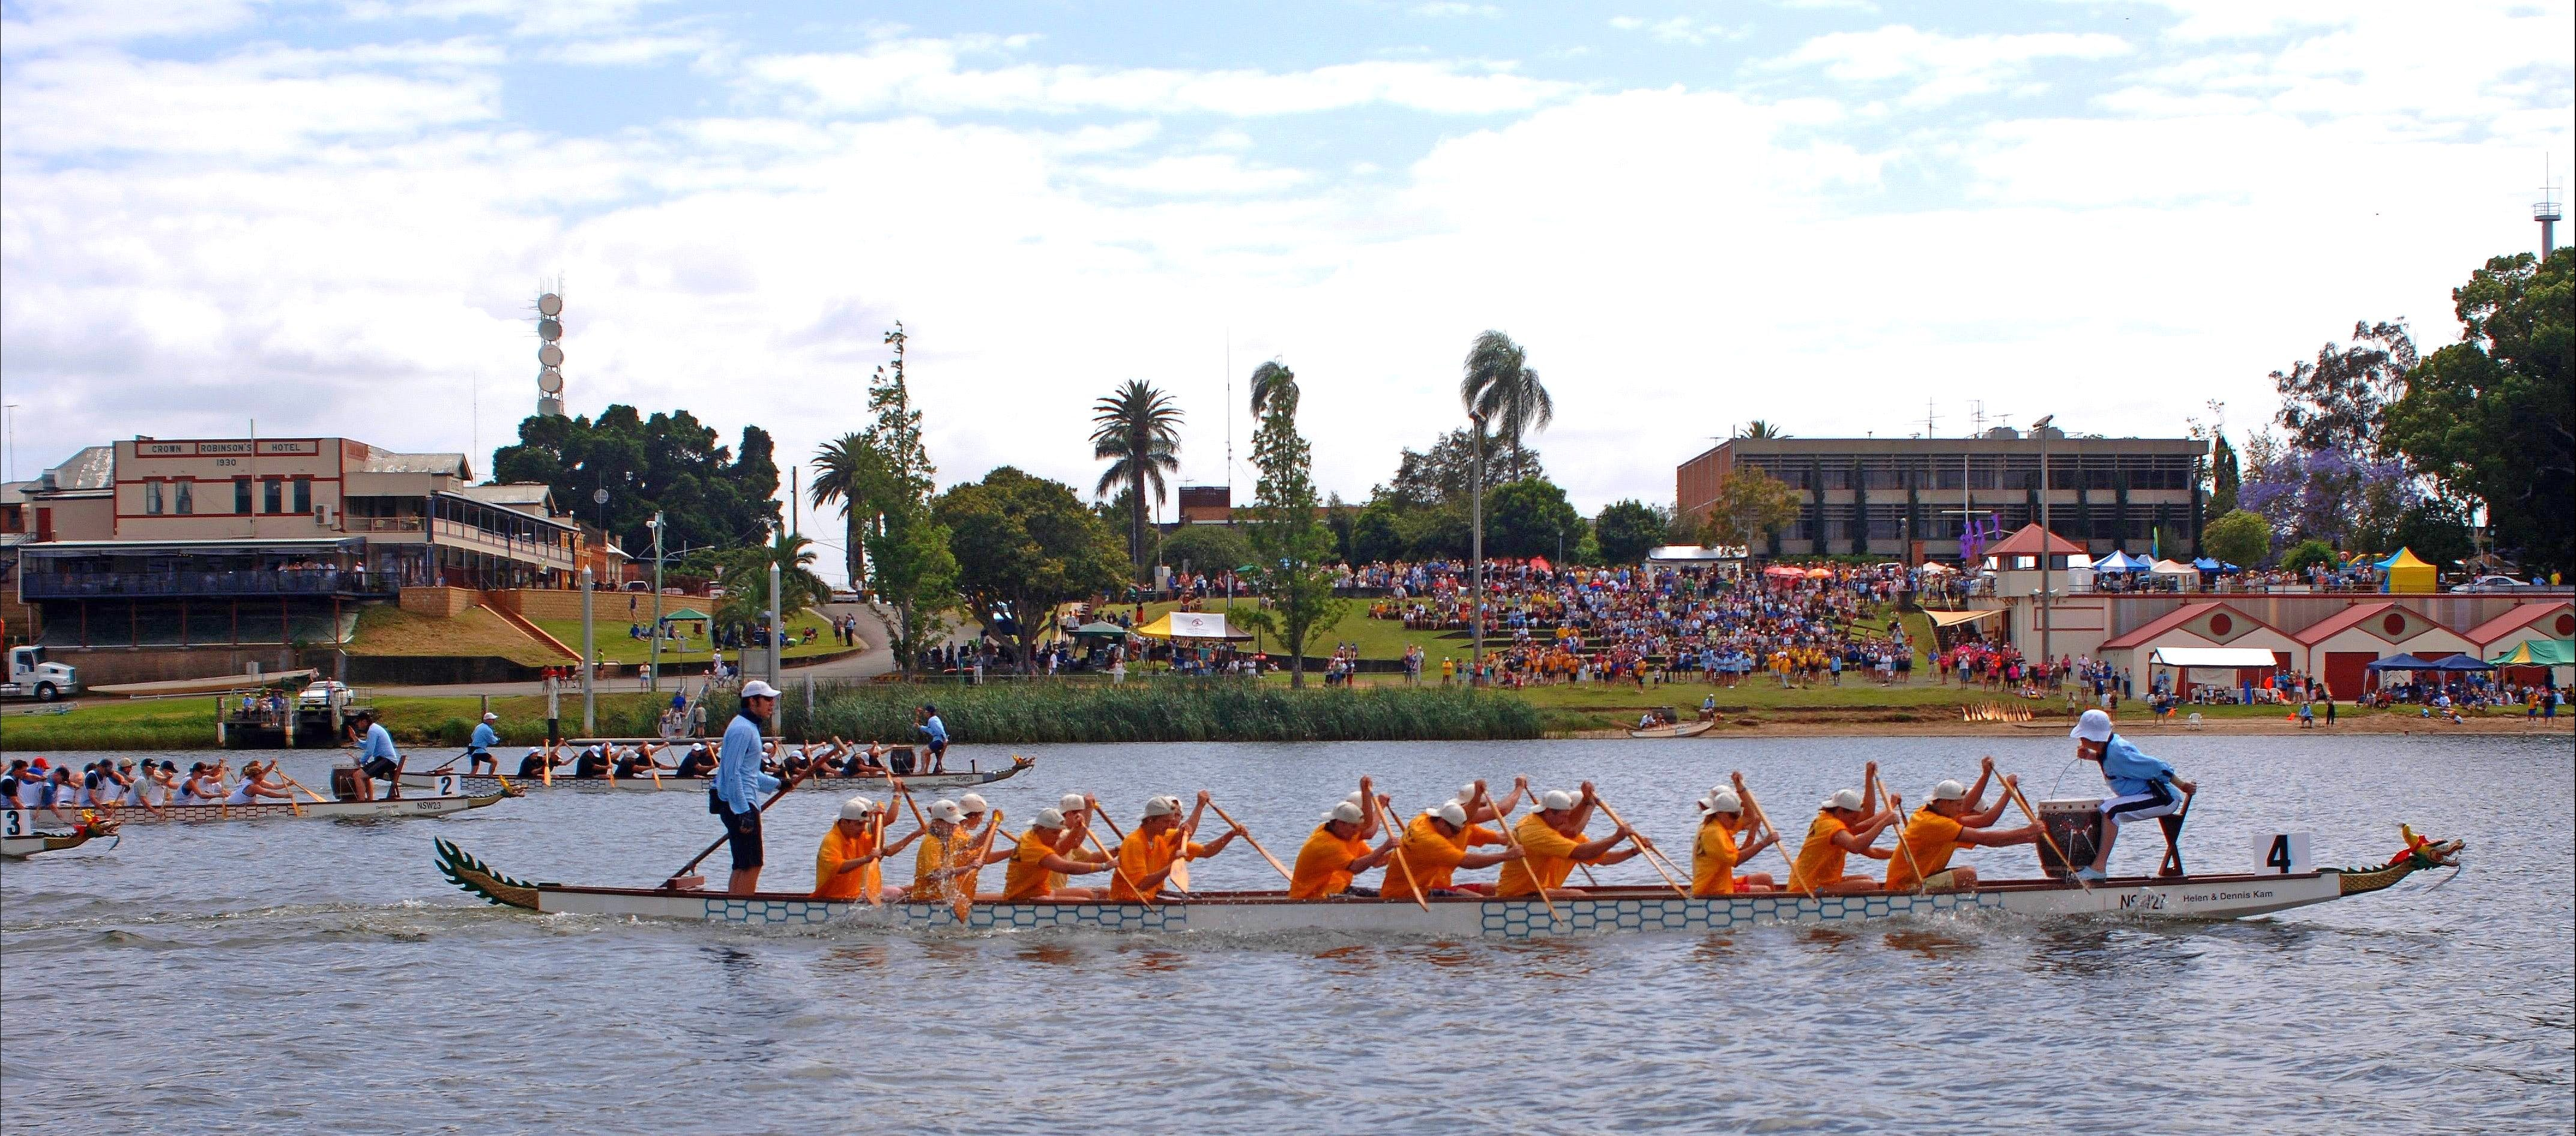 Jacaranda Dragon Boat Races - ACT Tourism